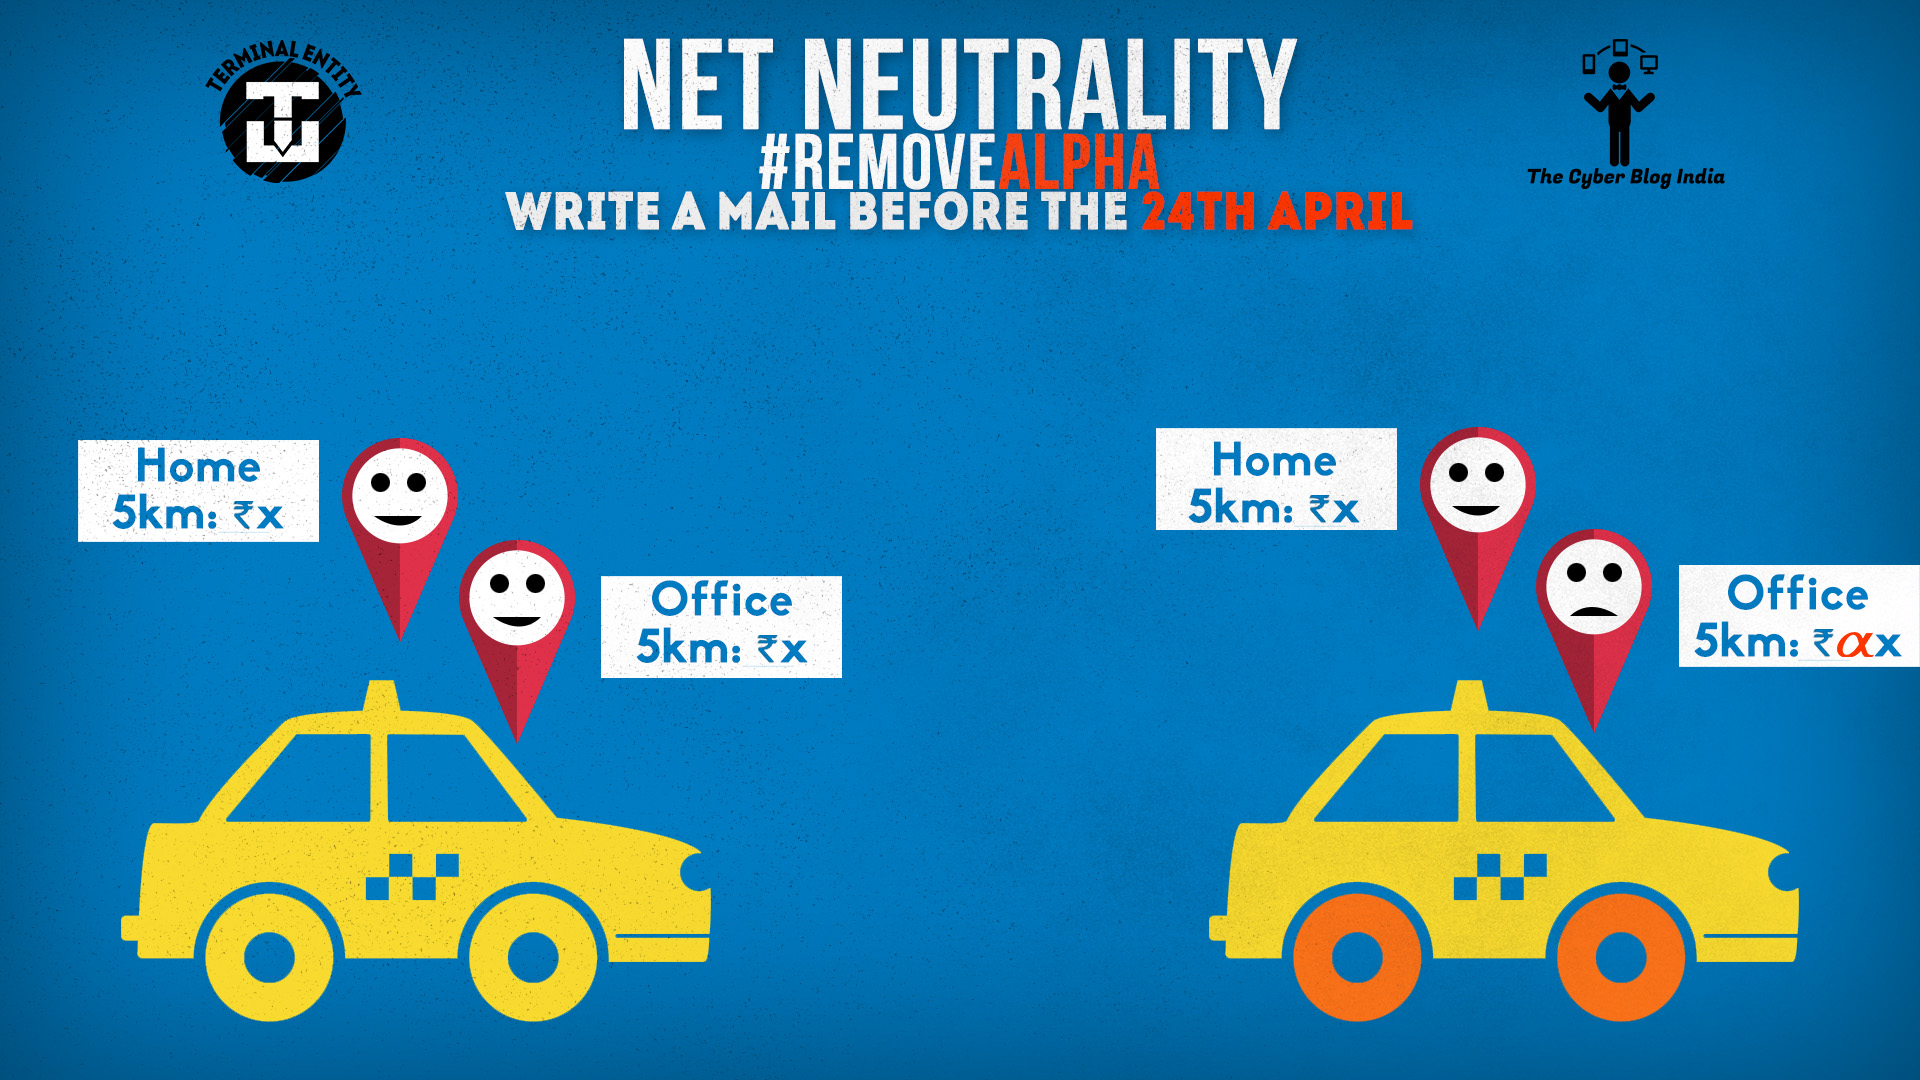 net neutrality essay As of august 2015, there were no laws governing net neutrality in india, which  would require that all internet users be treated equally, without discriminating or.